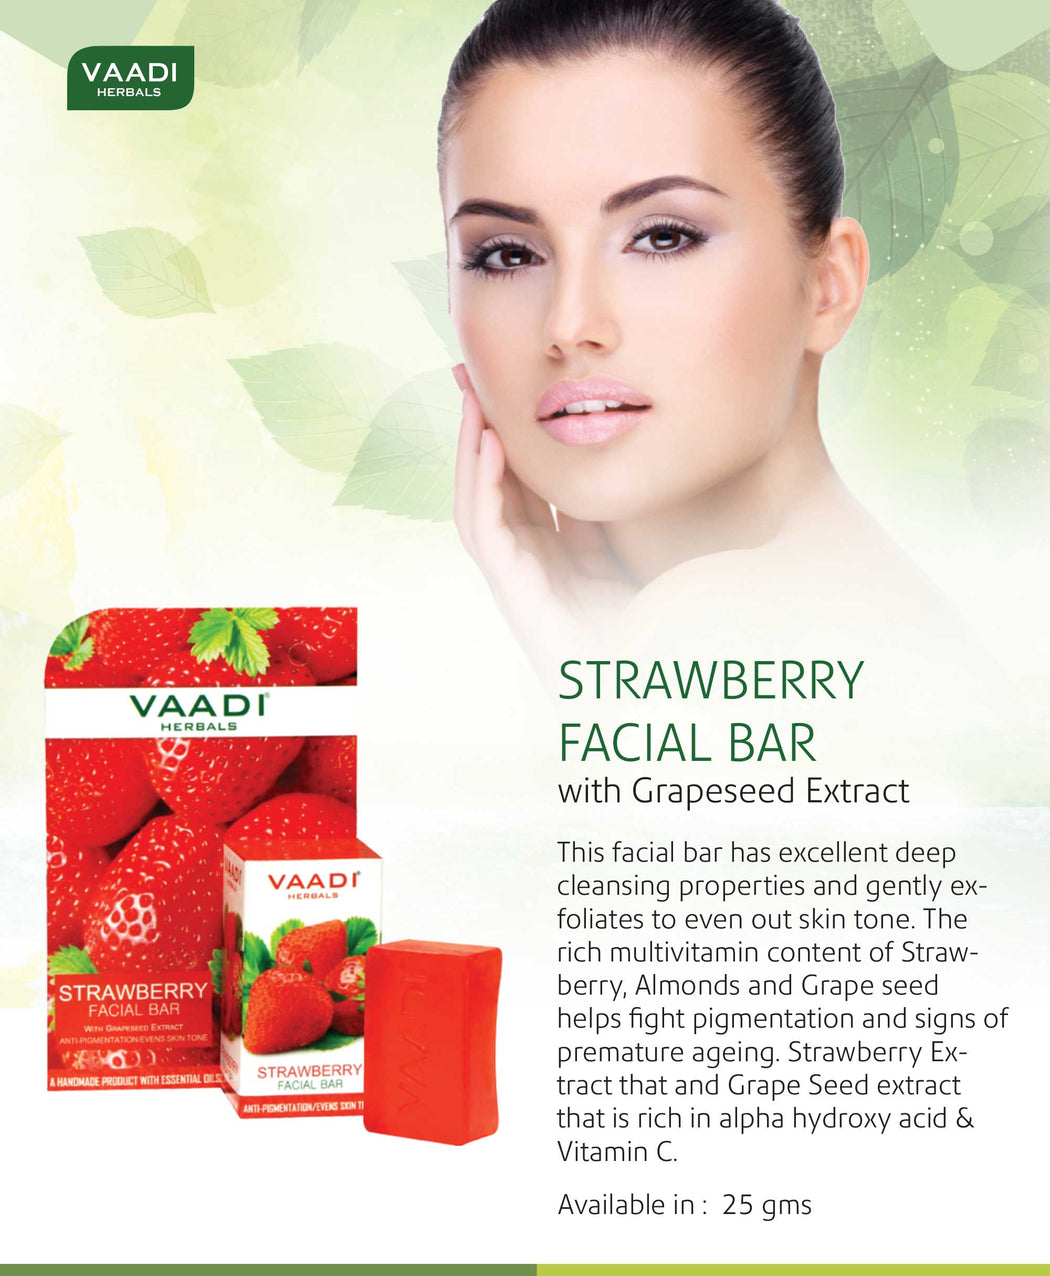 Organic Strawberry Facial Bar with Grapeseed Extract - Anti Ageing (4 x 25 gms/0.9 oz)